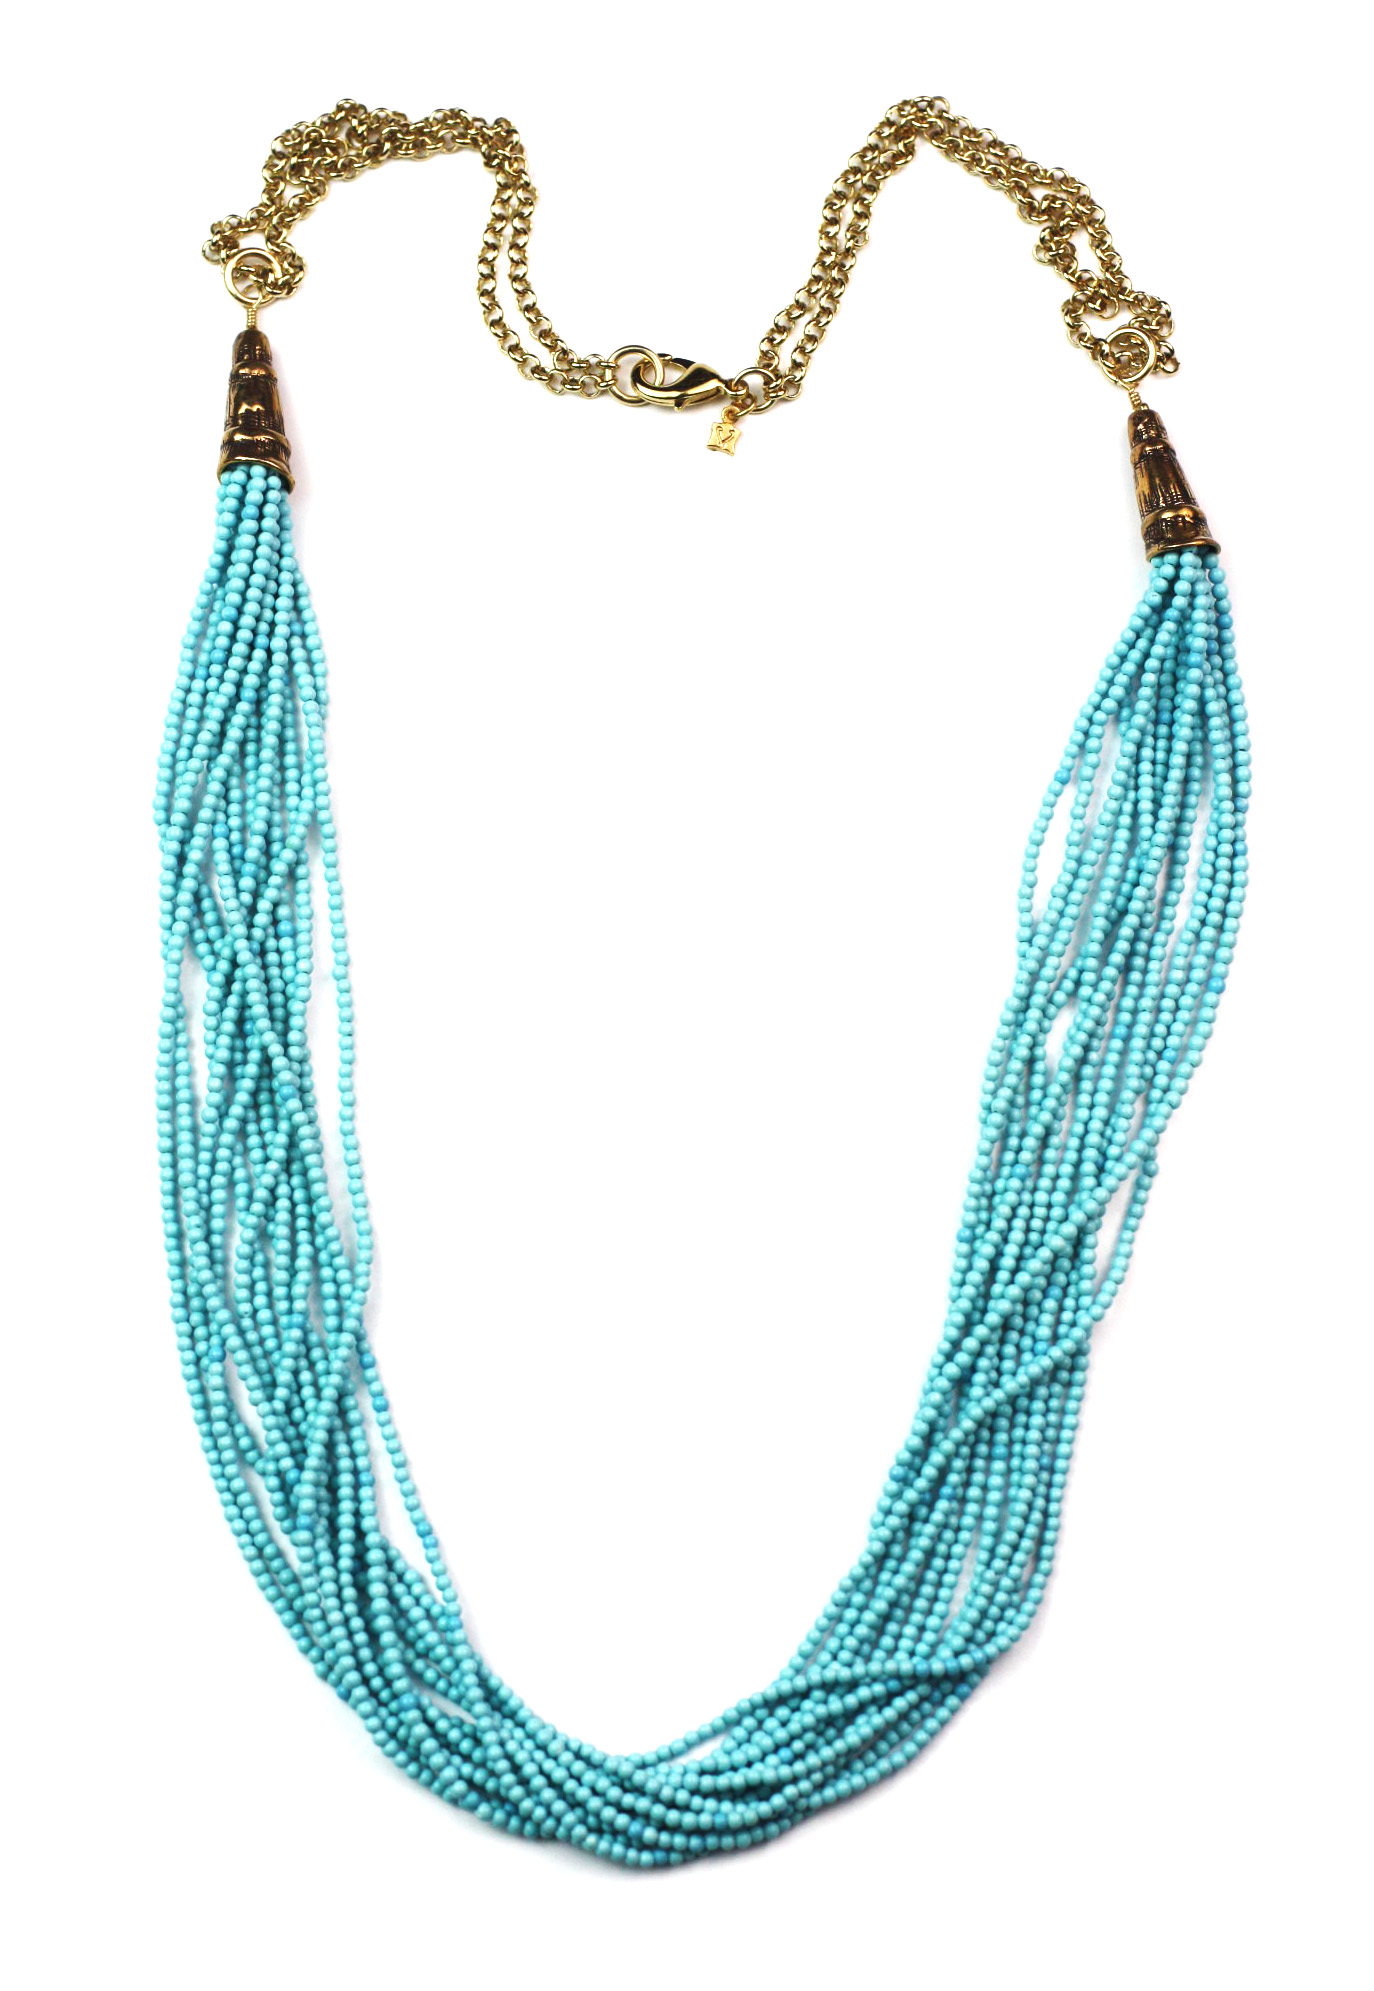 Multi strand turquoise colored necklace. Beautiful